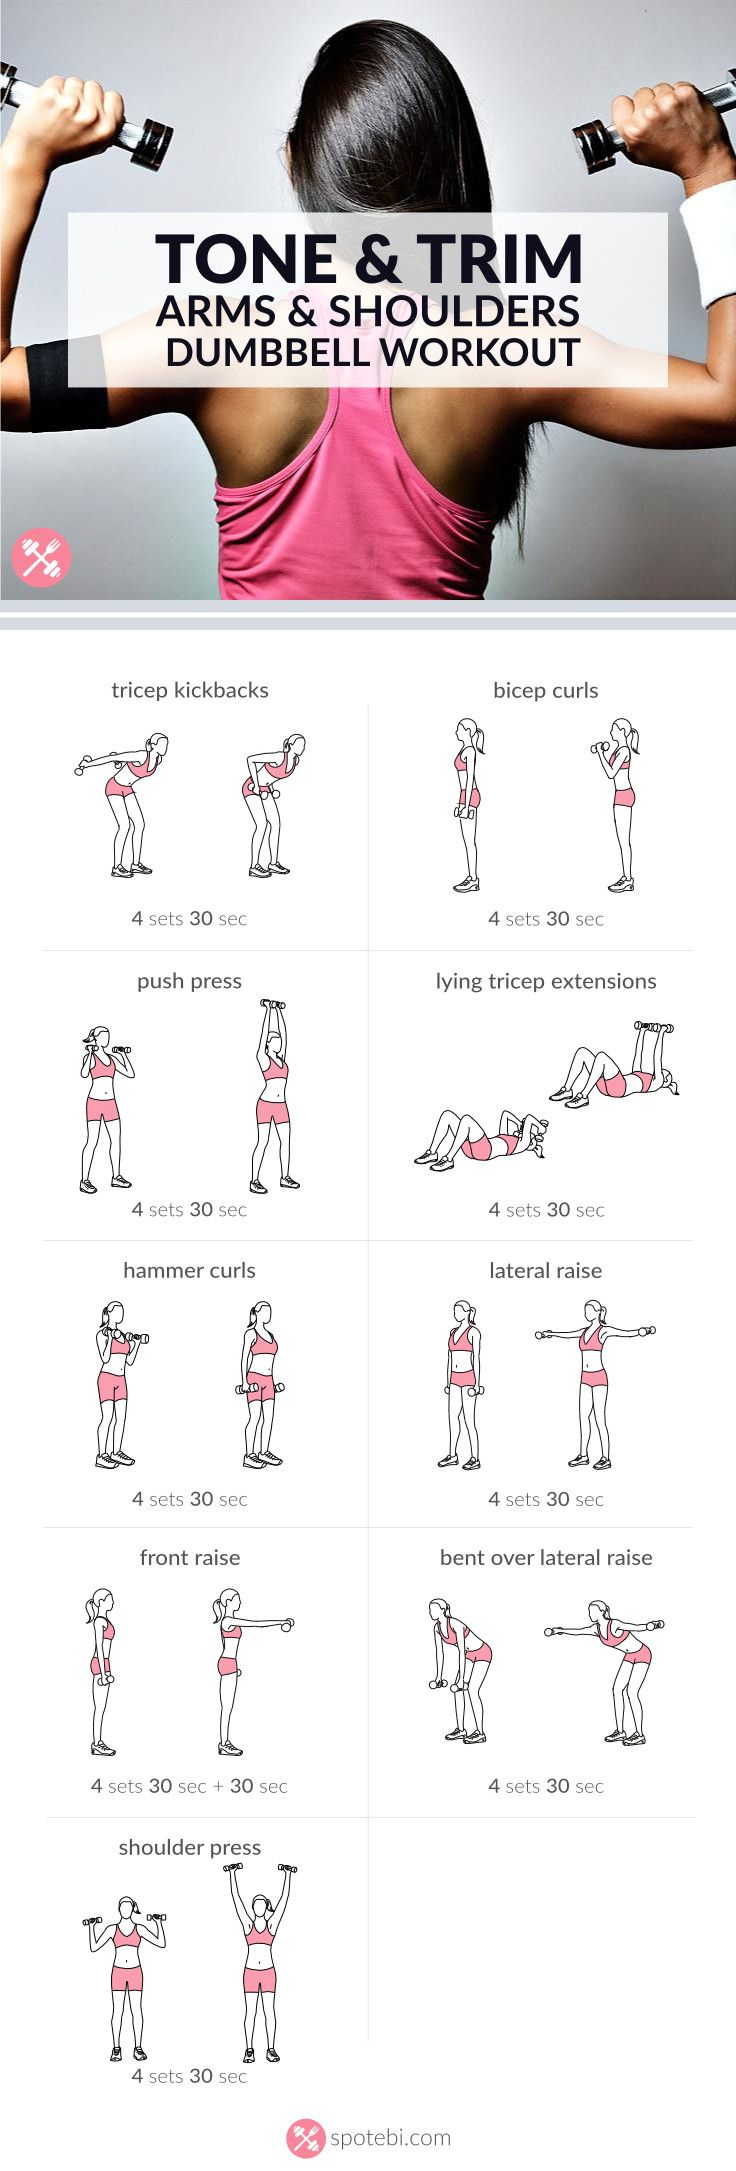 Upper Body Dumbbell Exercises Health Pinterest Mh Summer Sixpack Challenge The Circuit Get Rid Of Arm Fat And Tone Sleek Muscles With Help These